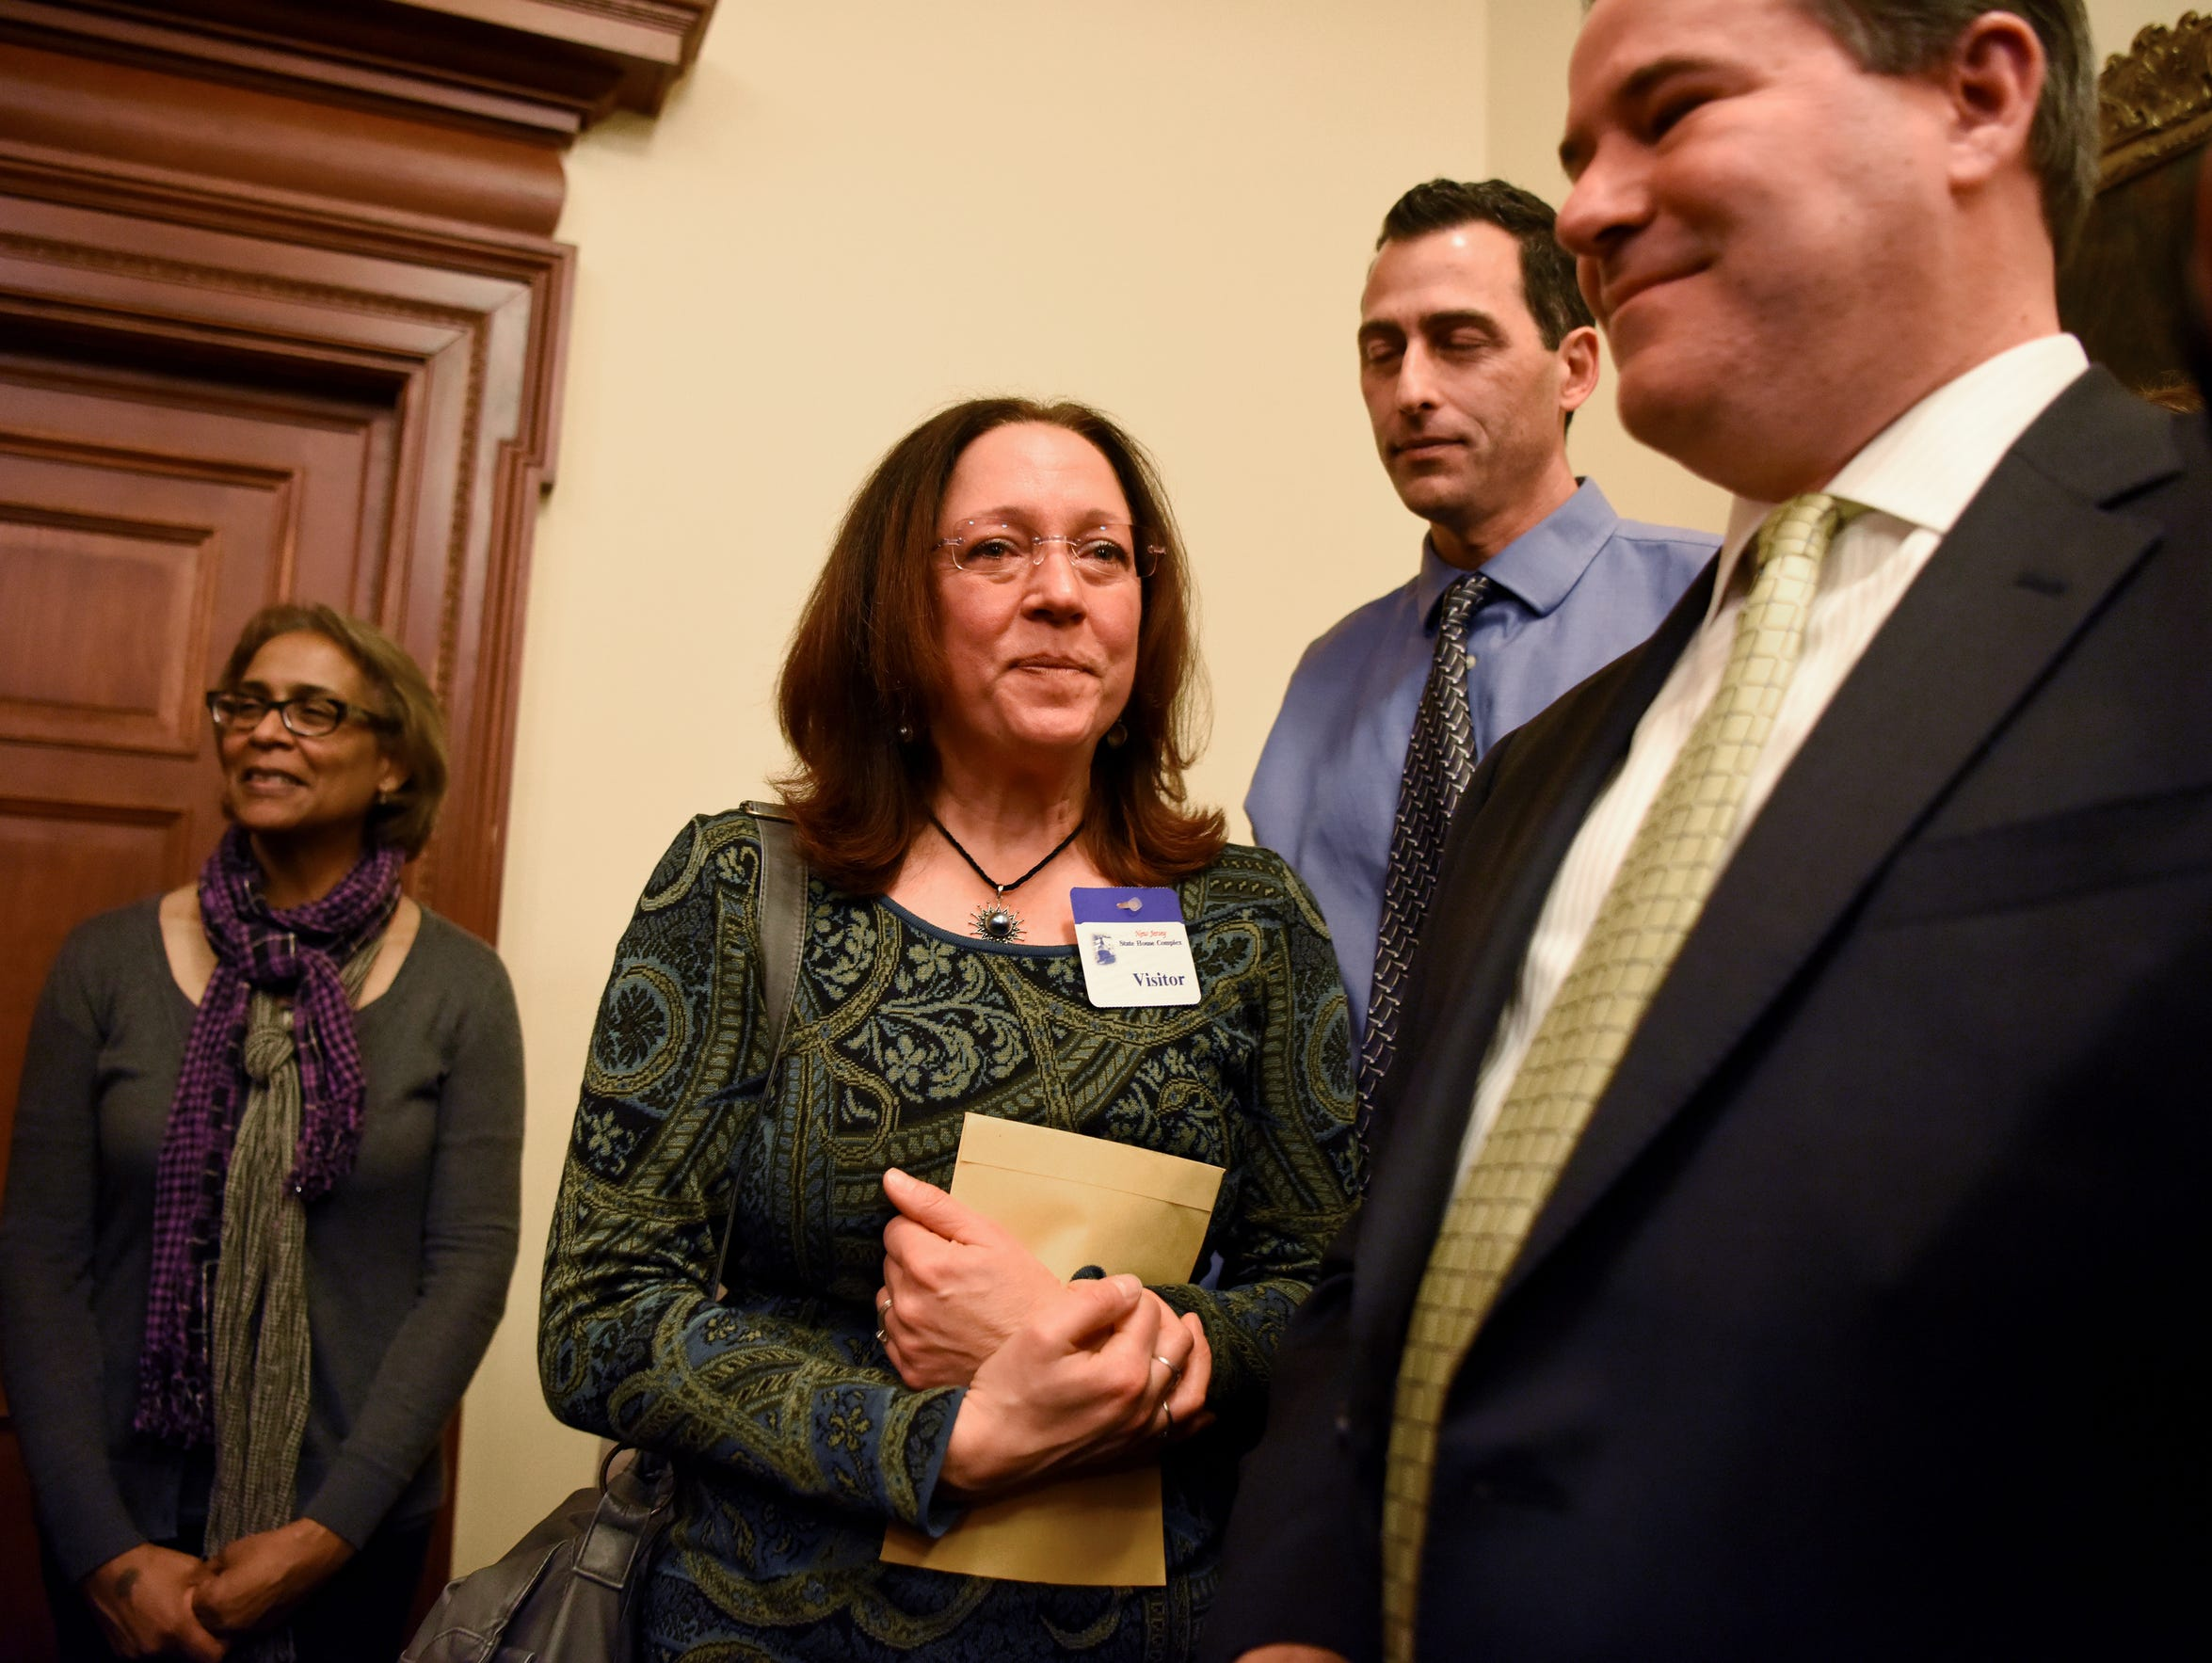 Adoptee Theresa Carroll of East Islip, NY, center, clutches her birth certificate at the end of a press conference held at the State House in Trenton commemorating passage of the NJ Adoptees' Birthright Act.